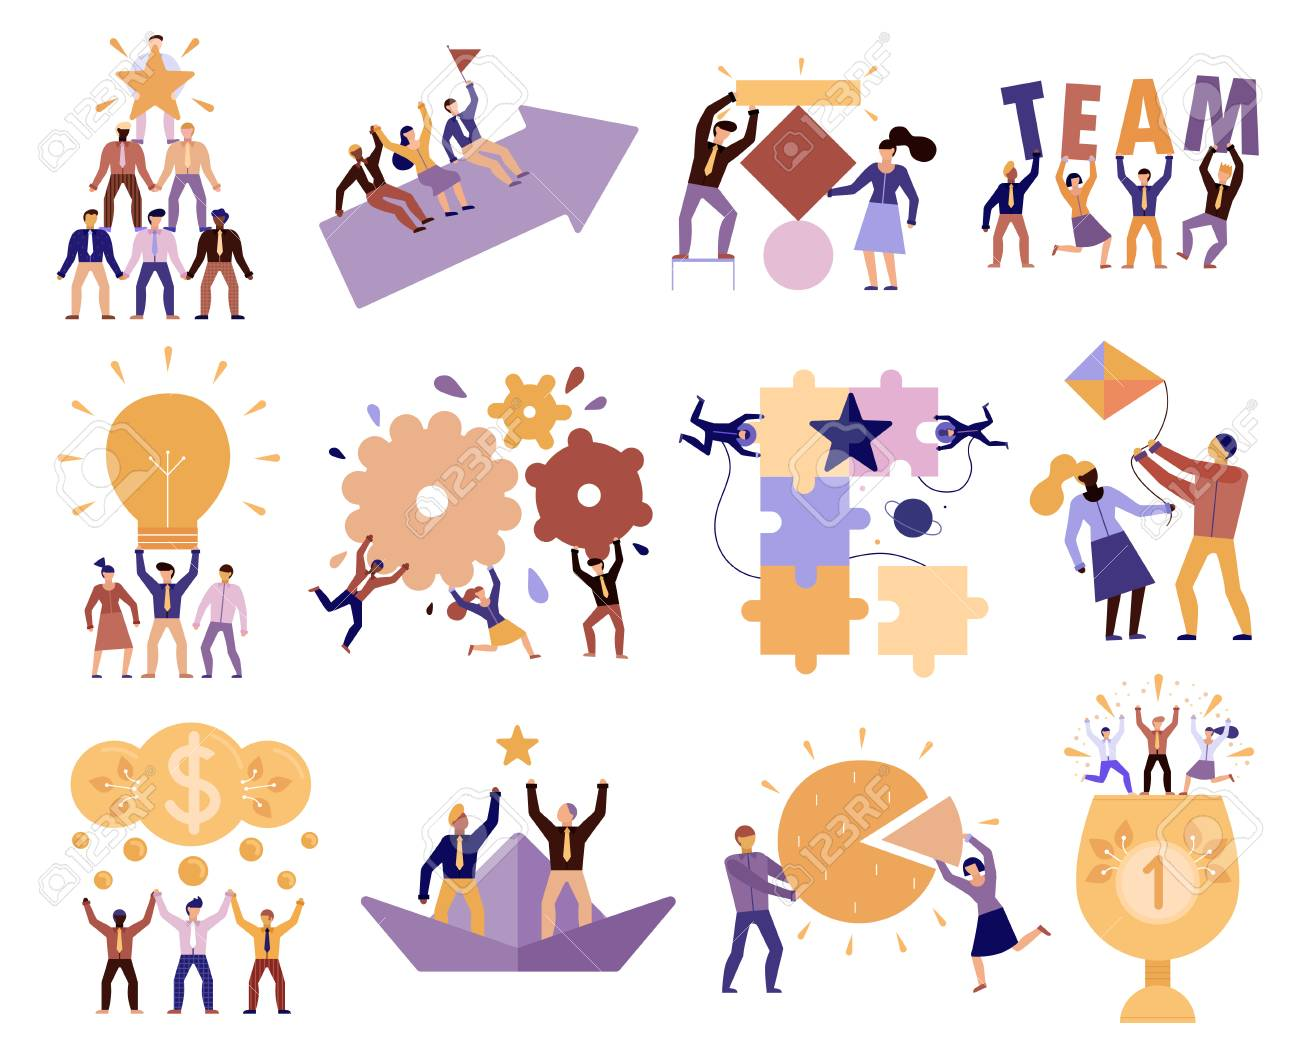 Effective teamwork in workplace 12 cartoon compositions of successful team members cooperation trust goals commitment vector illustration - 108292403